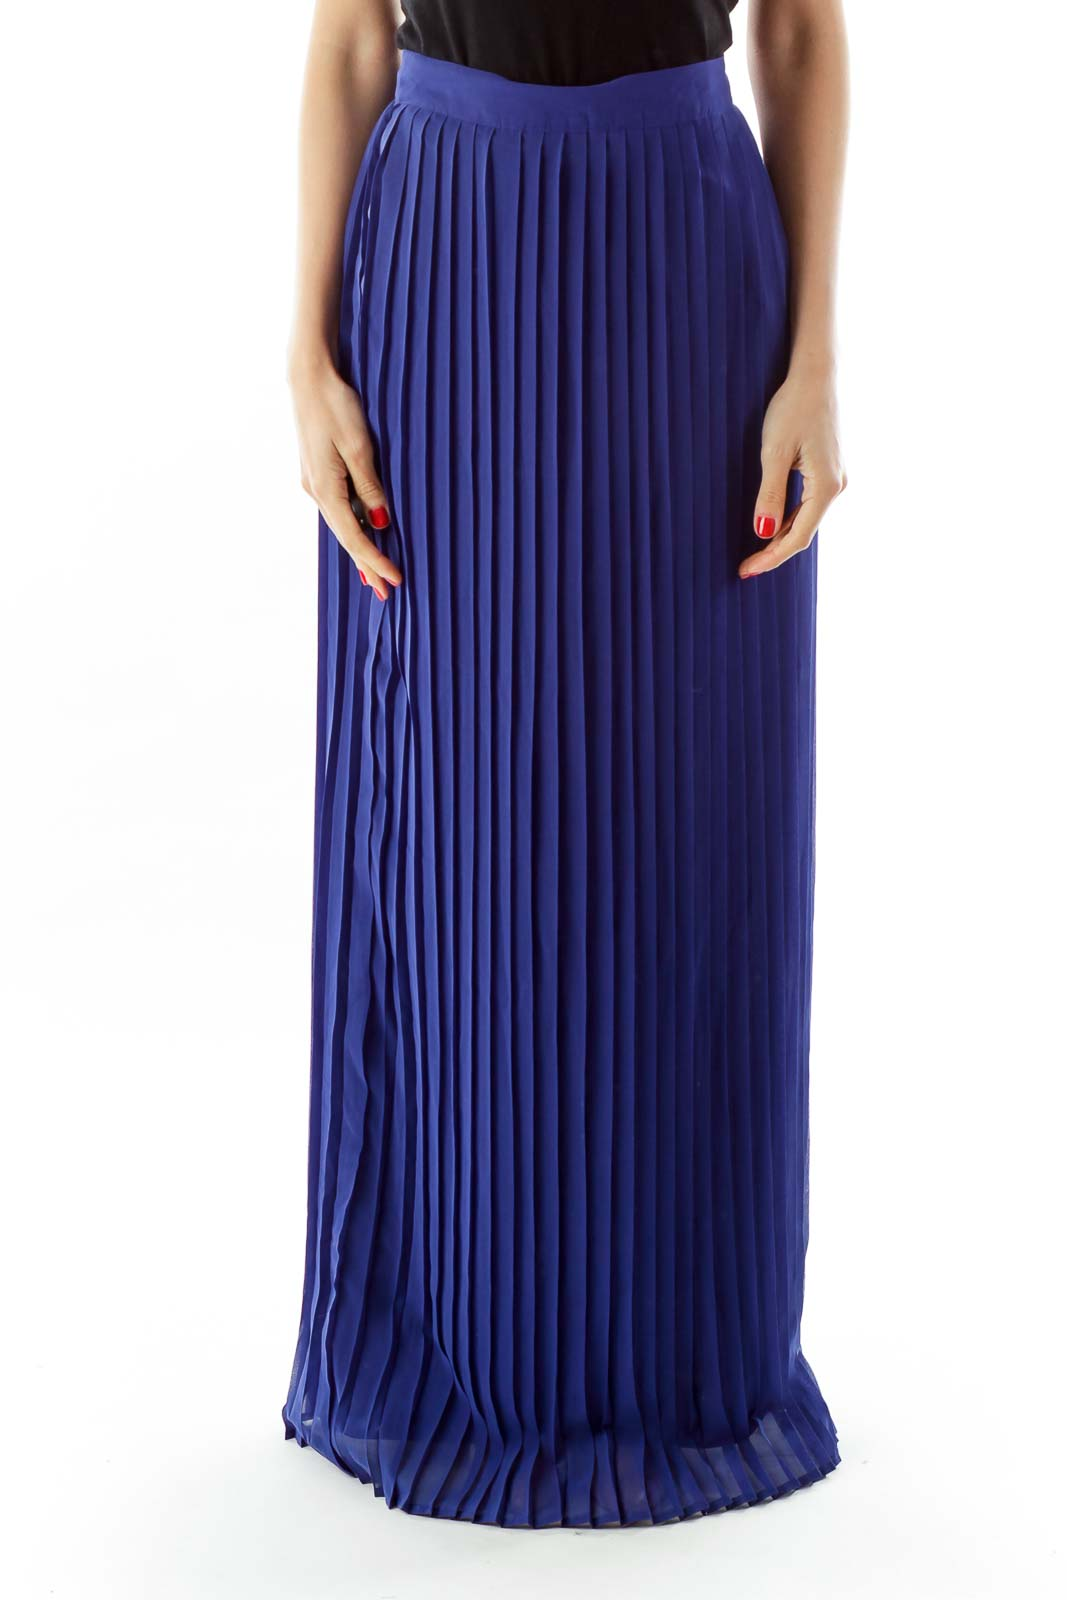 Blue Pleated Maxi SKirt Front